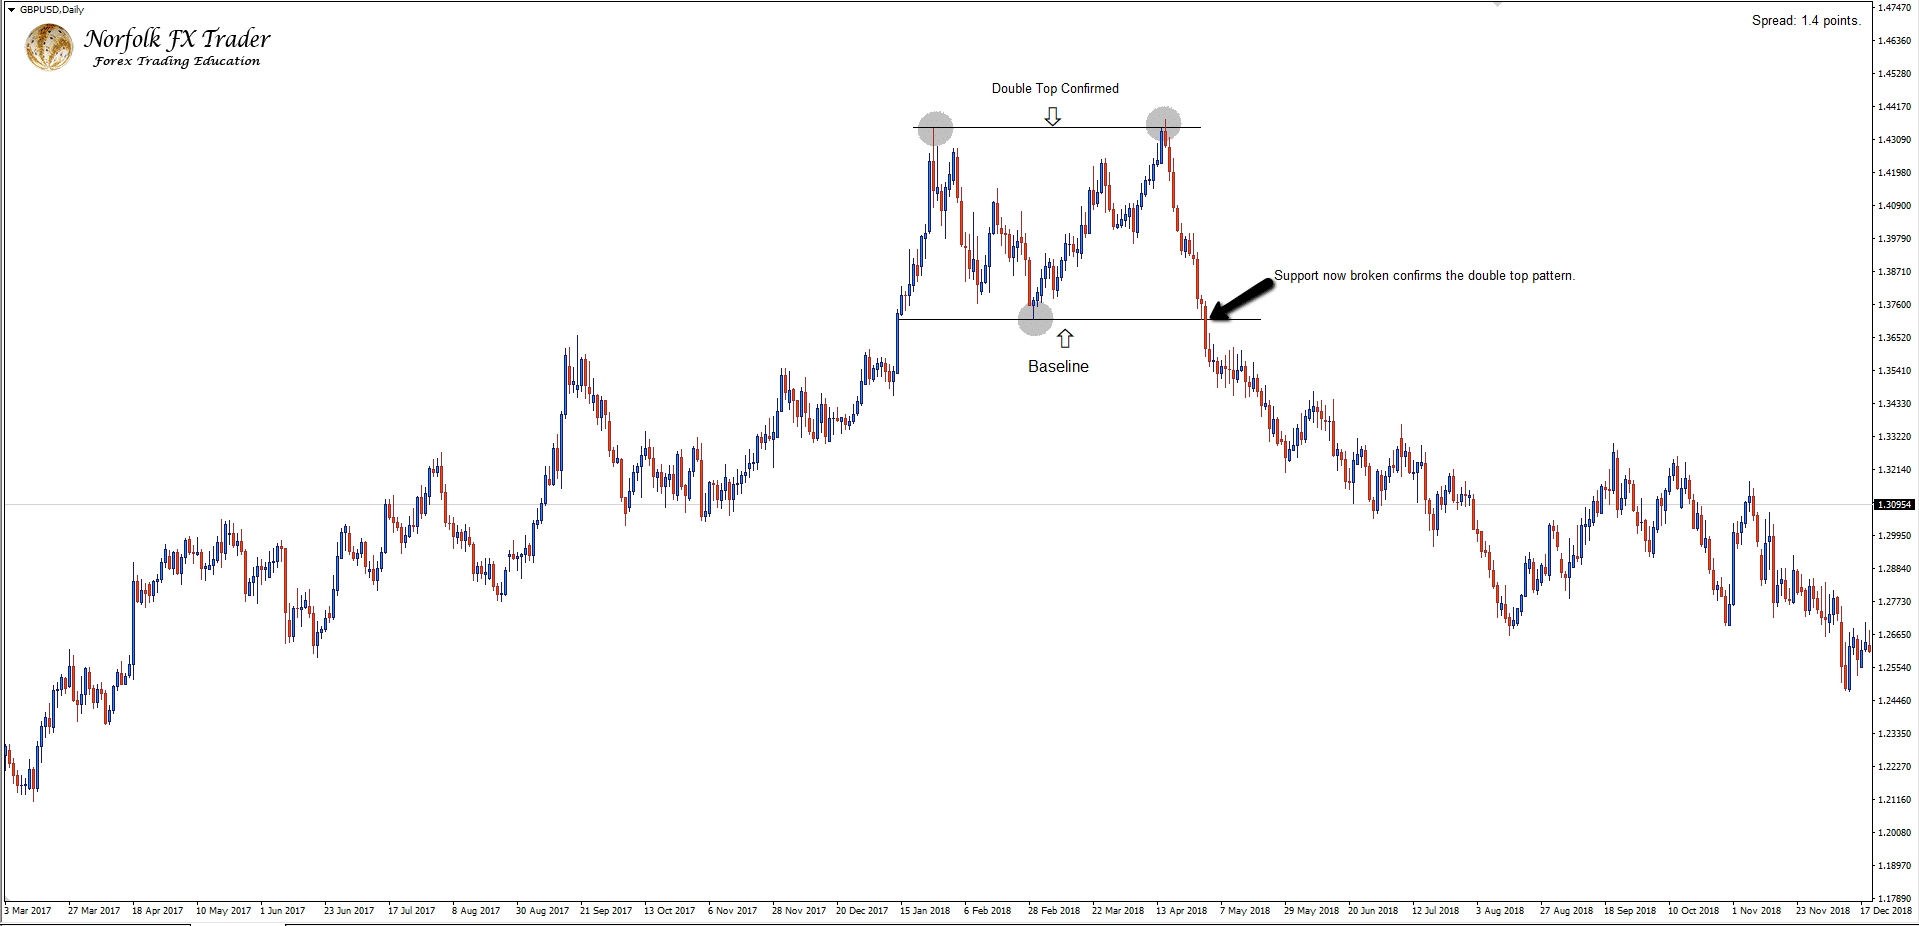 GBPUSD Double top confirmed